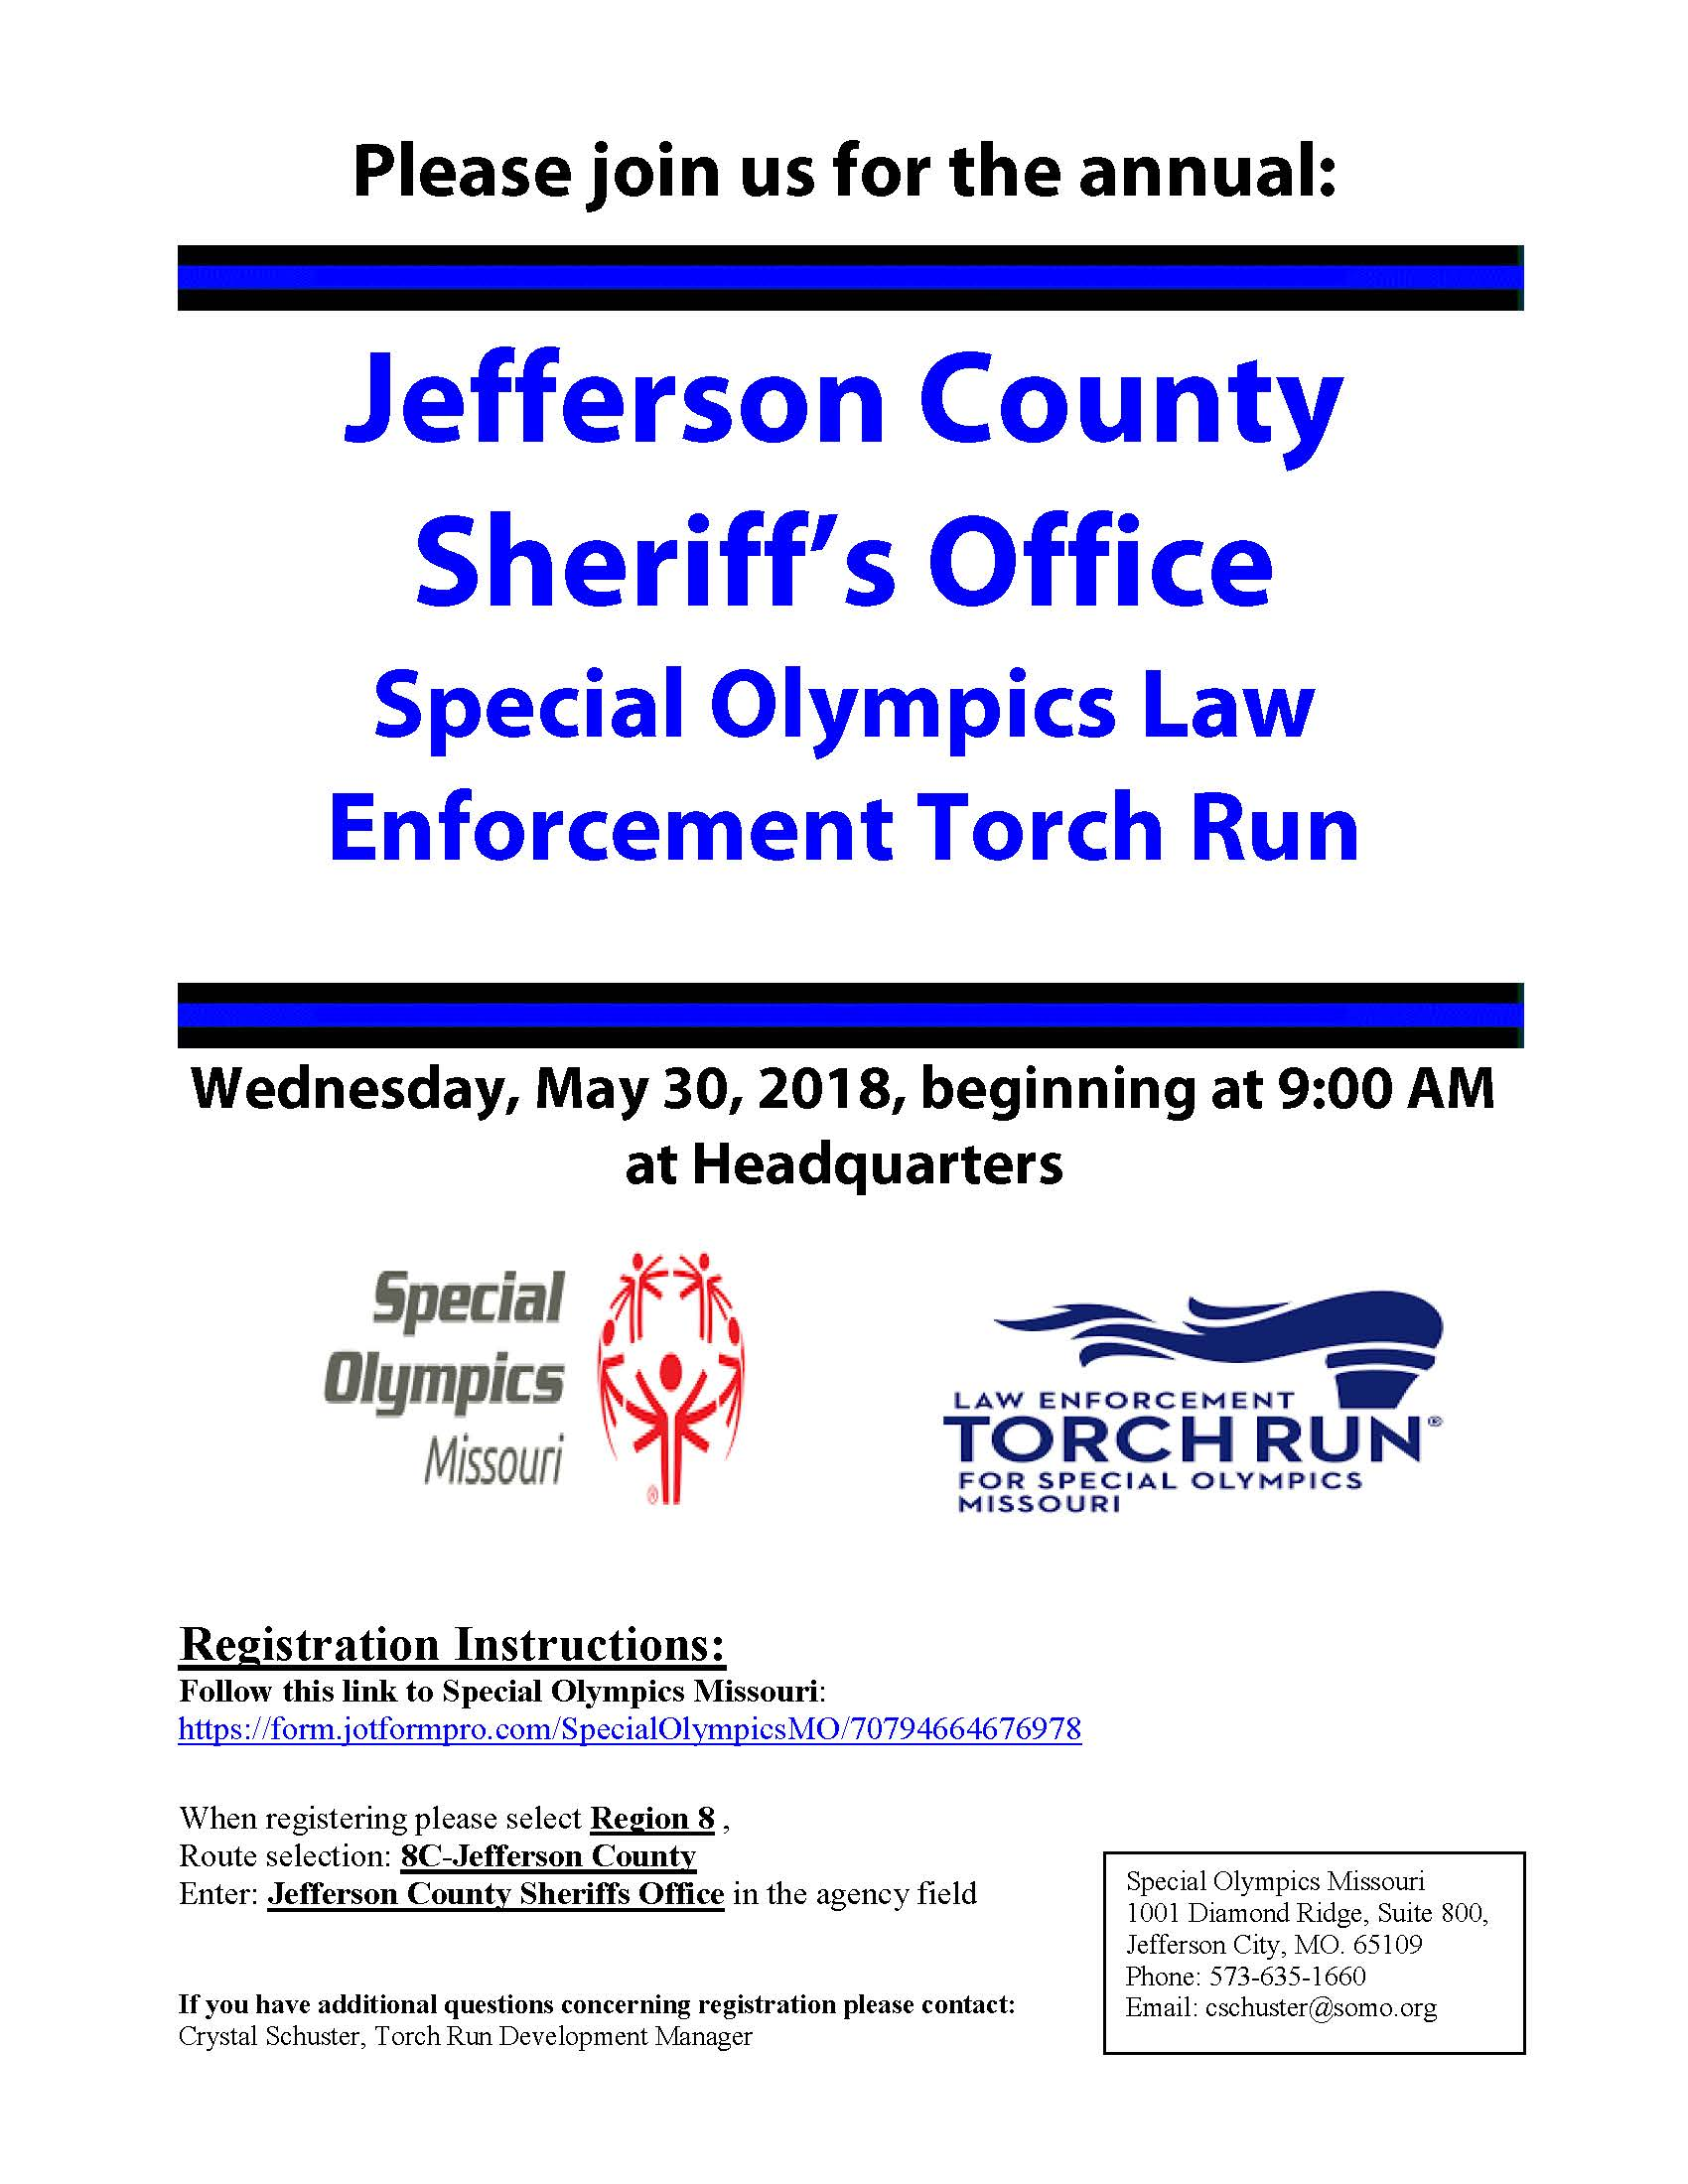 Special Olympics Torch Run 2018